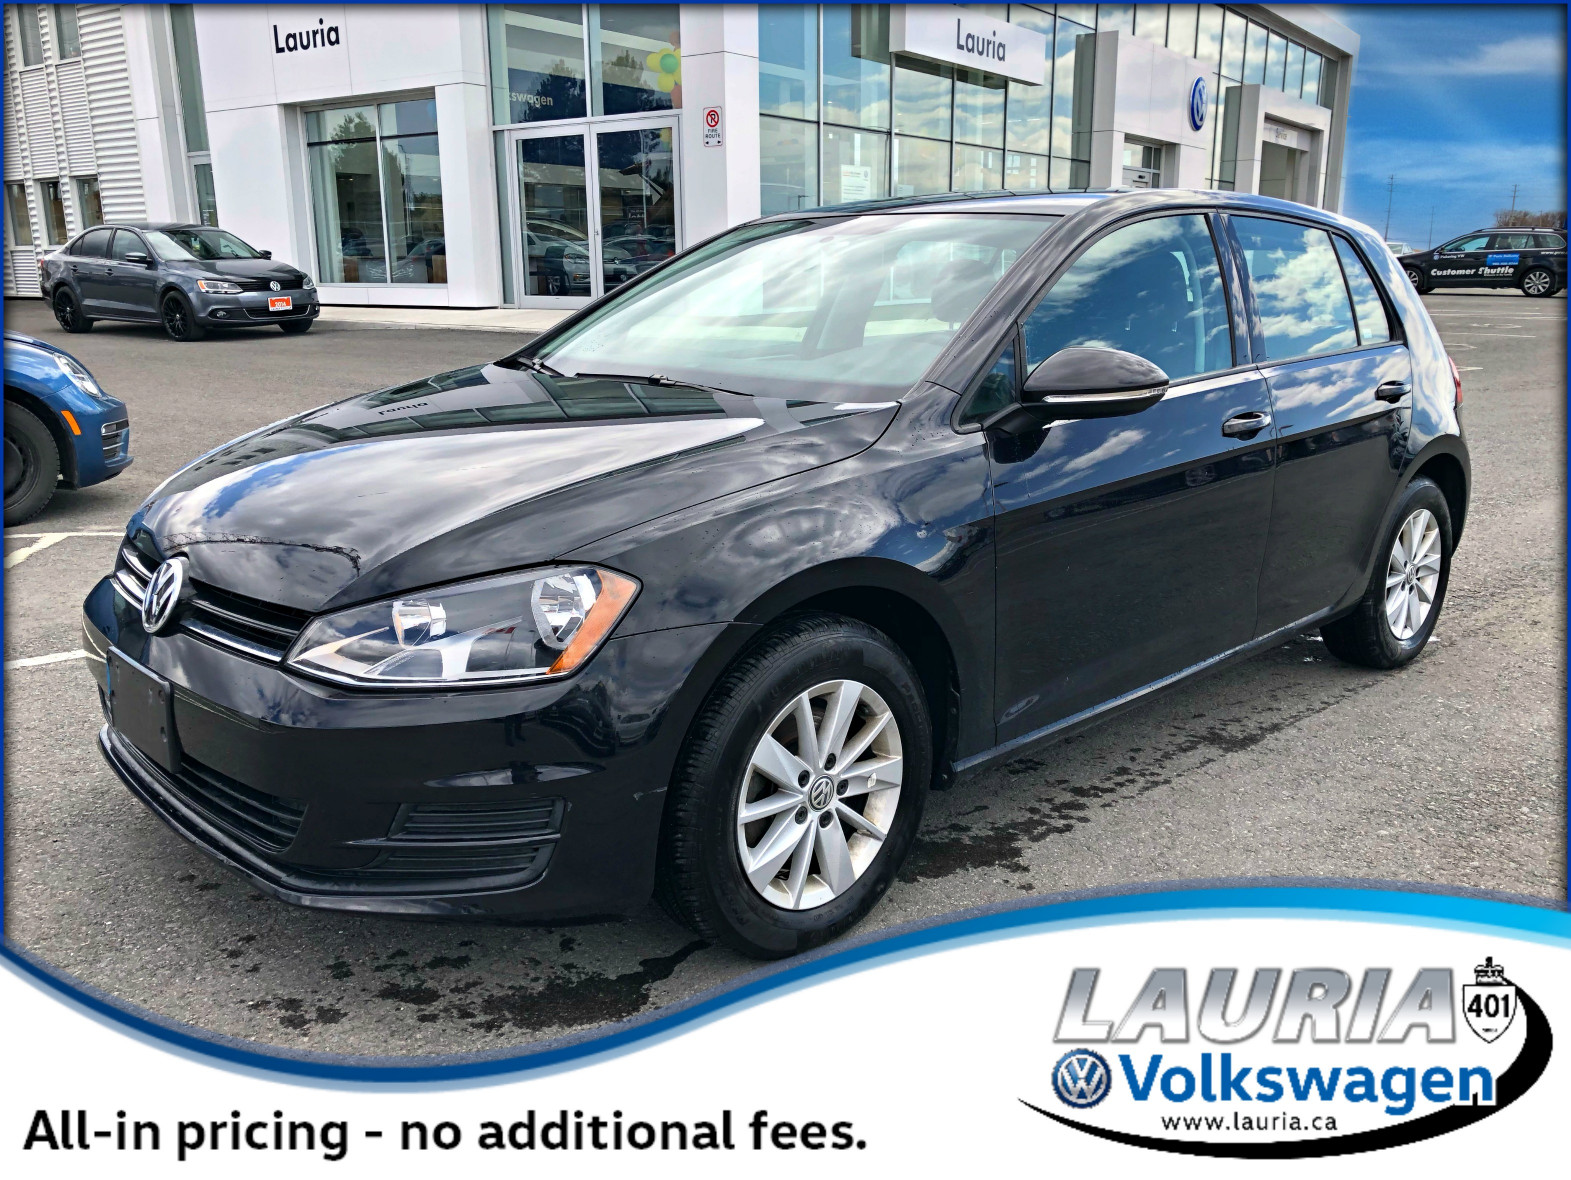 Certified Pre-Owned 2017 Volkswagen Golf 1.8 TSI Trendline Auto - Bluetooth / Backup camera